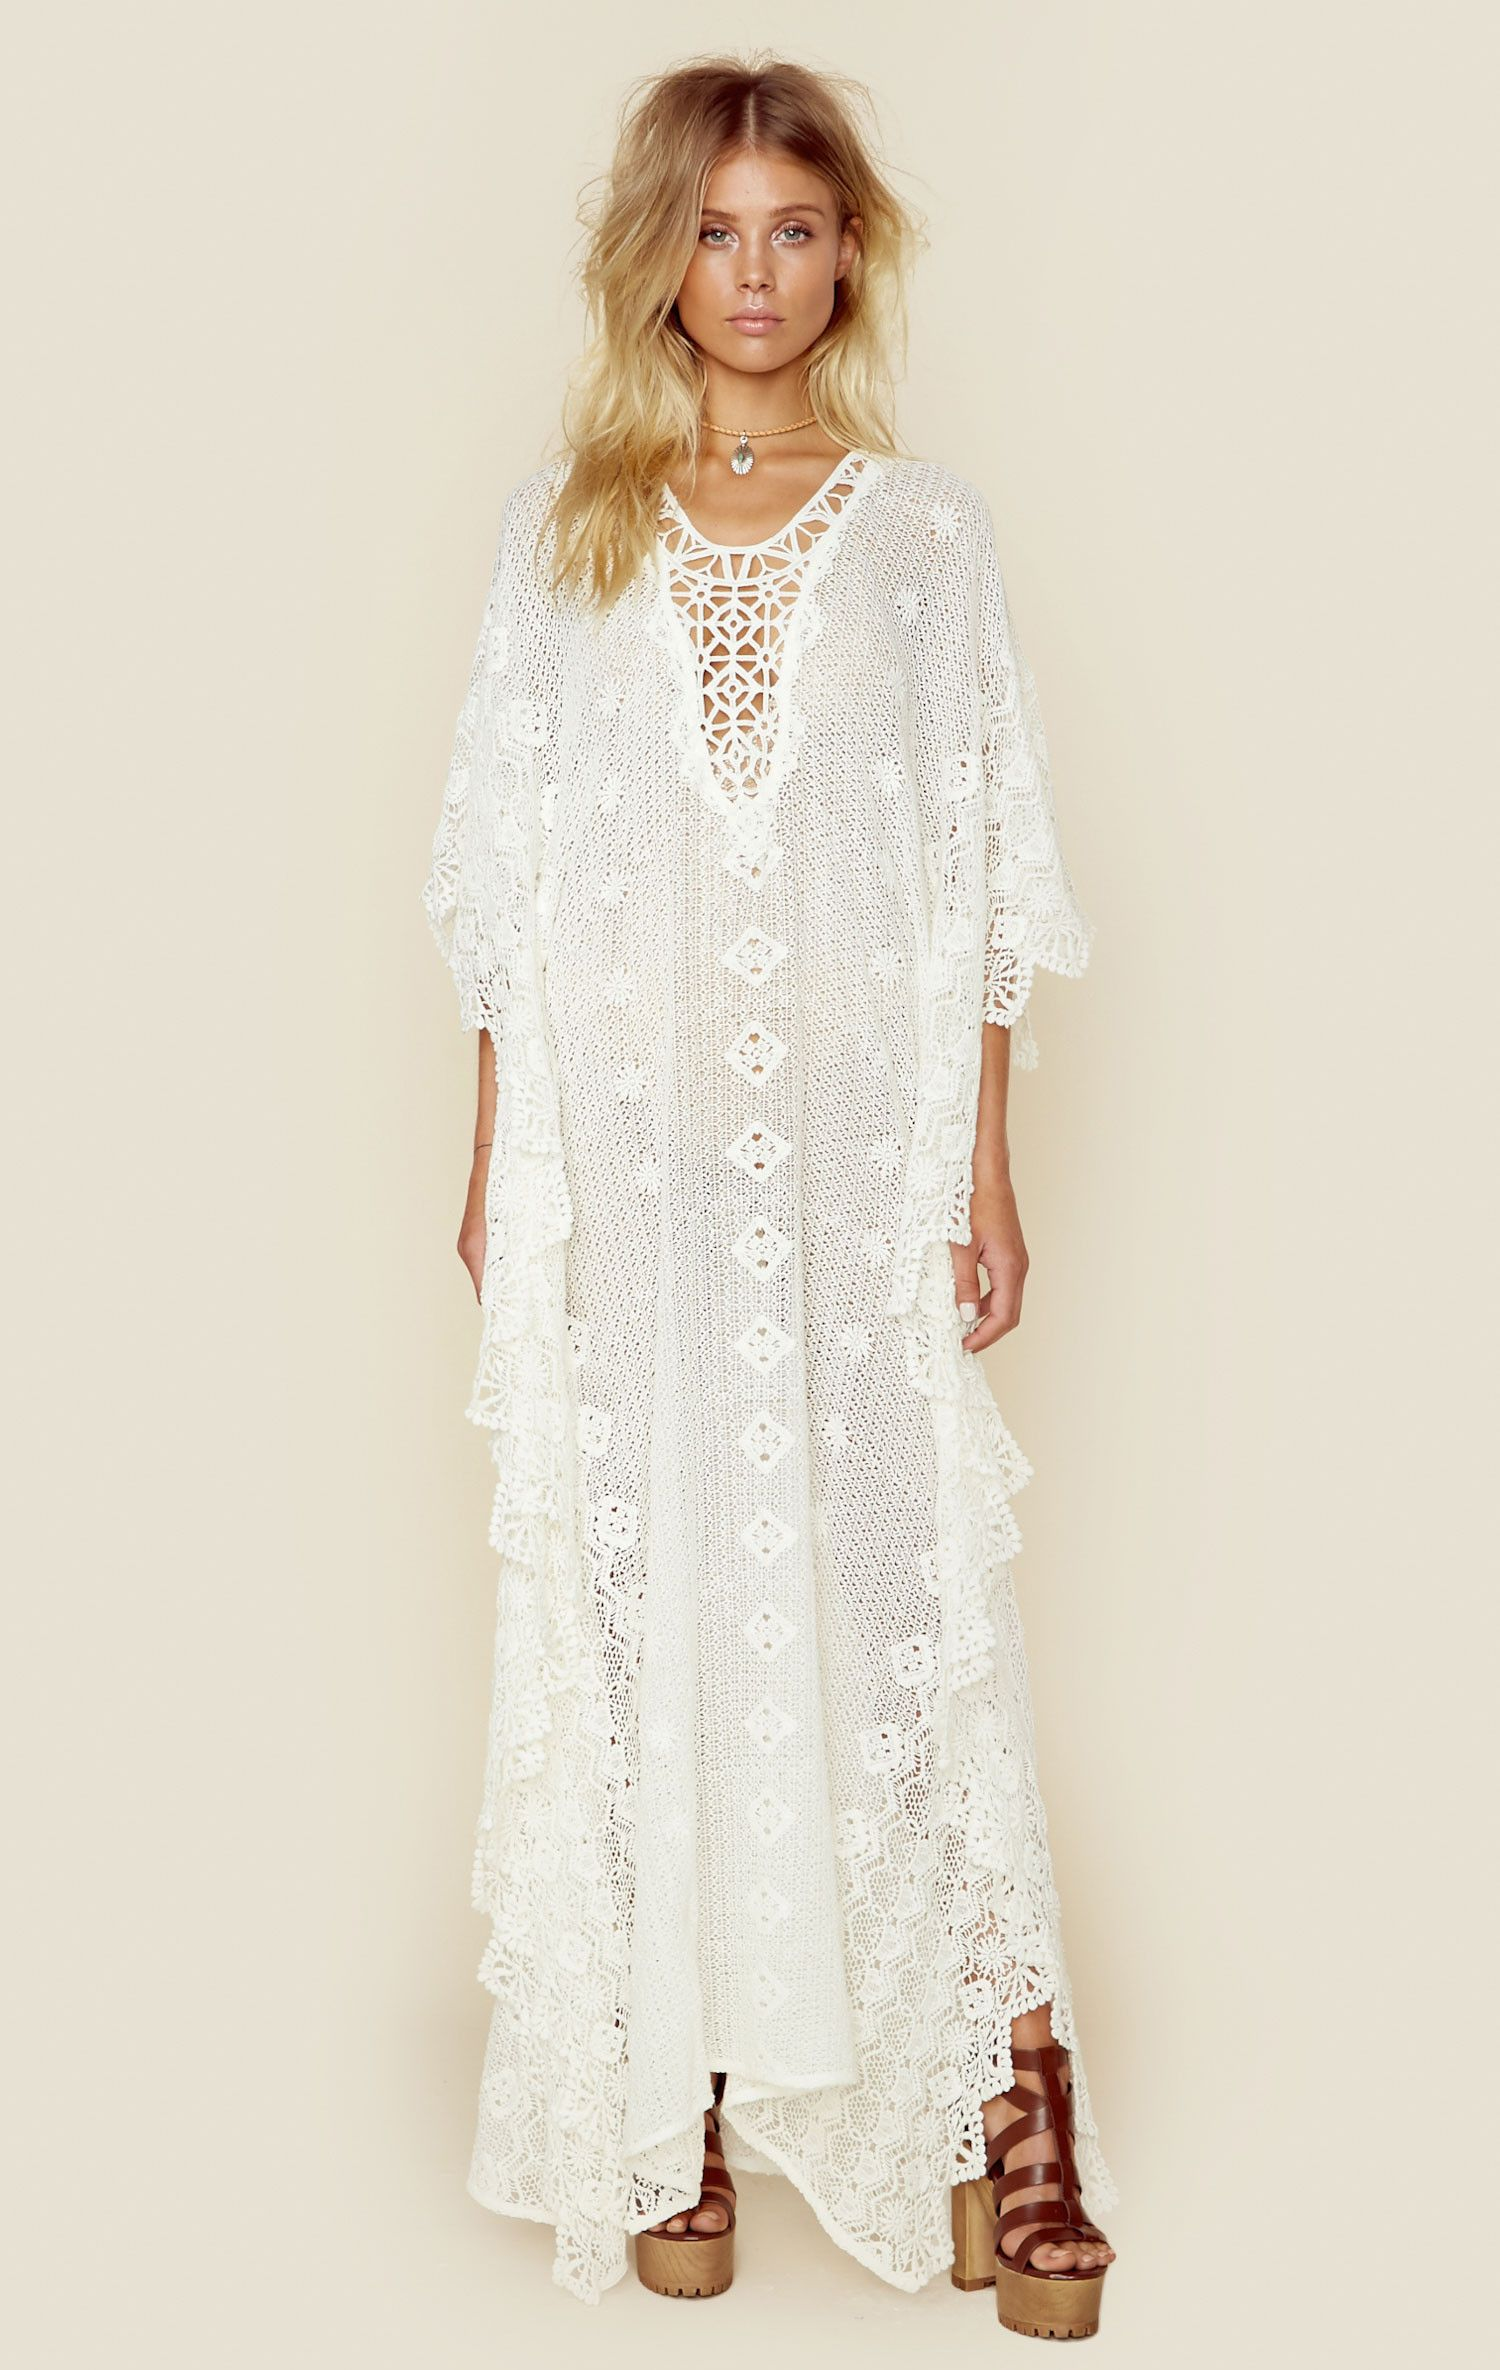 661b98216d RITUAL MYKONOS KAFTAN Hot Summer Outfits, Culture Clothing, Romantic  Outfit, Boho Outfits,